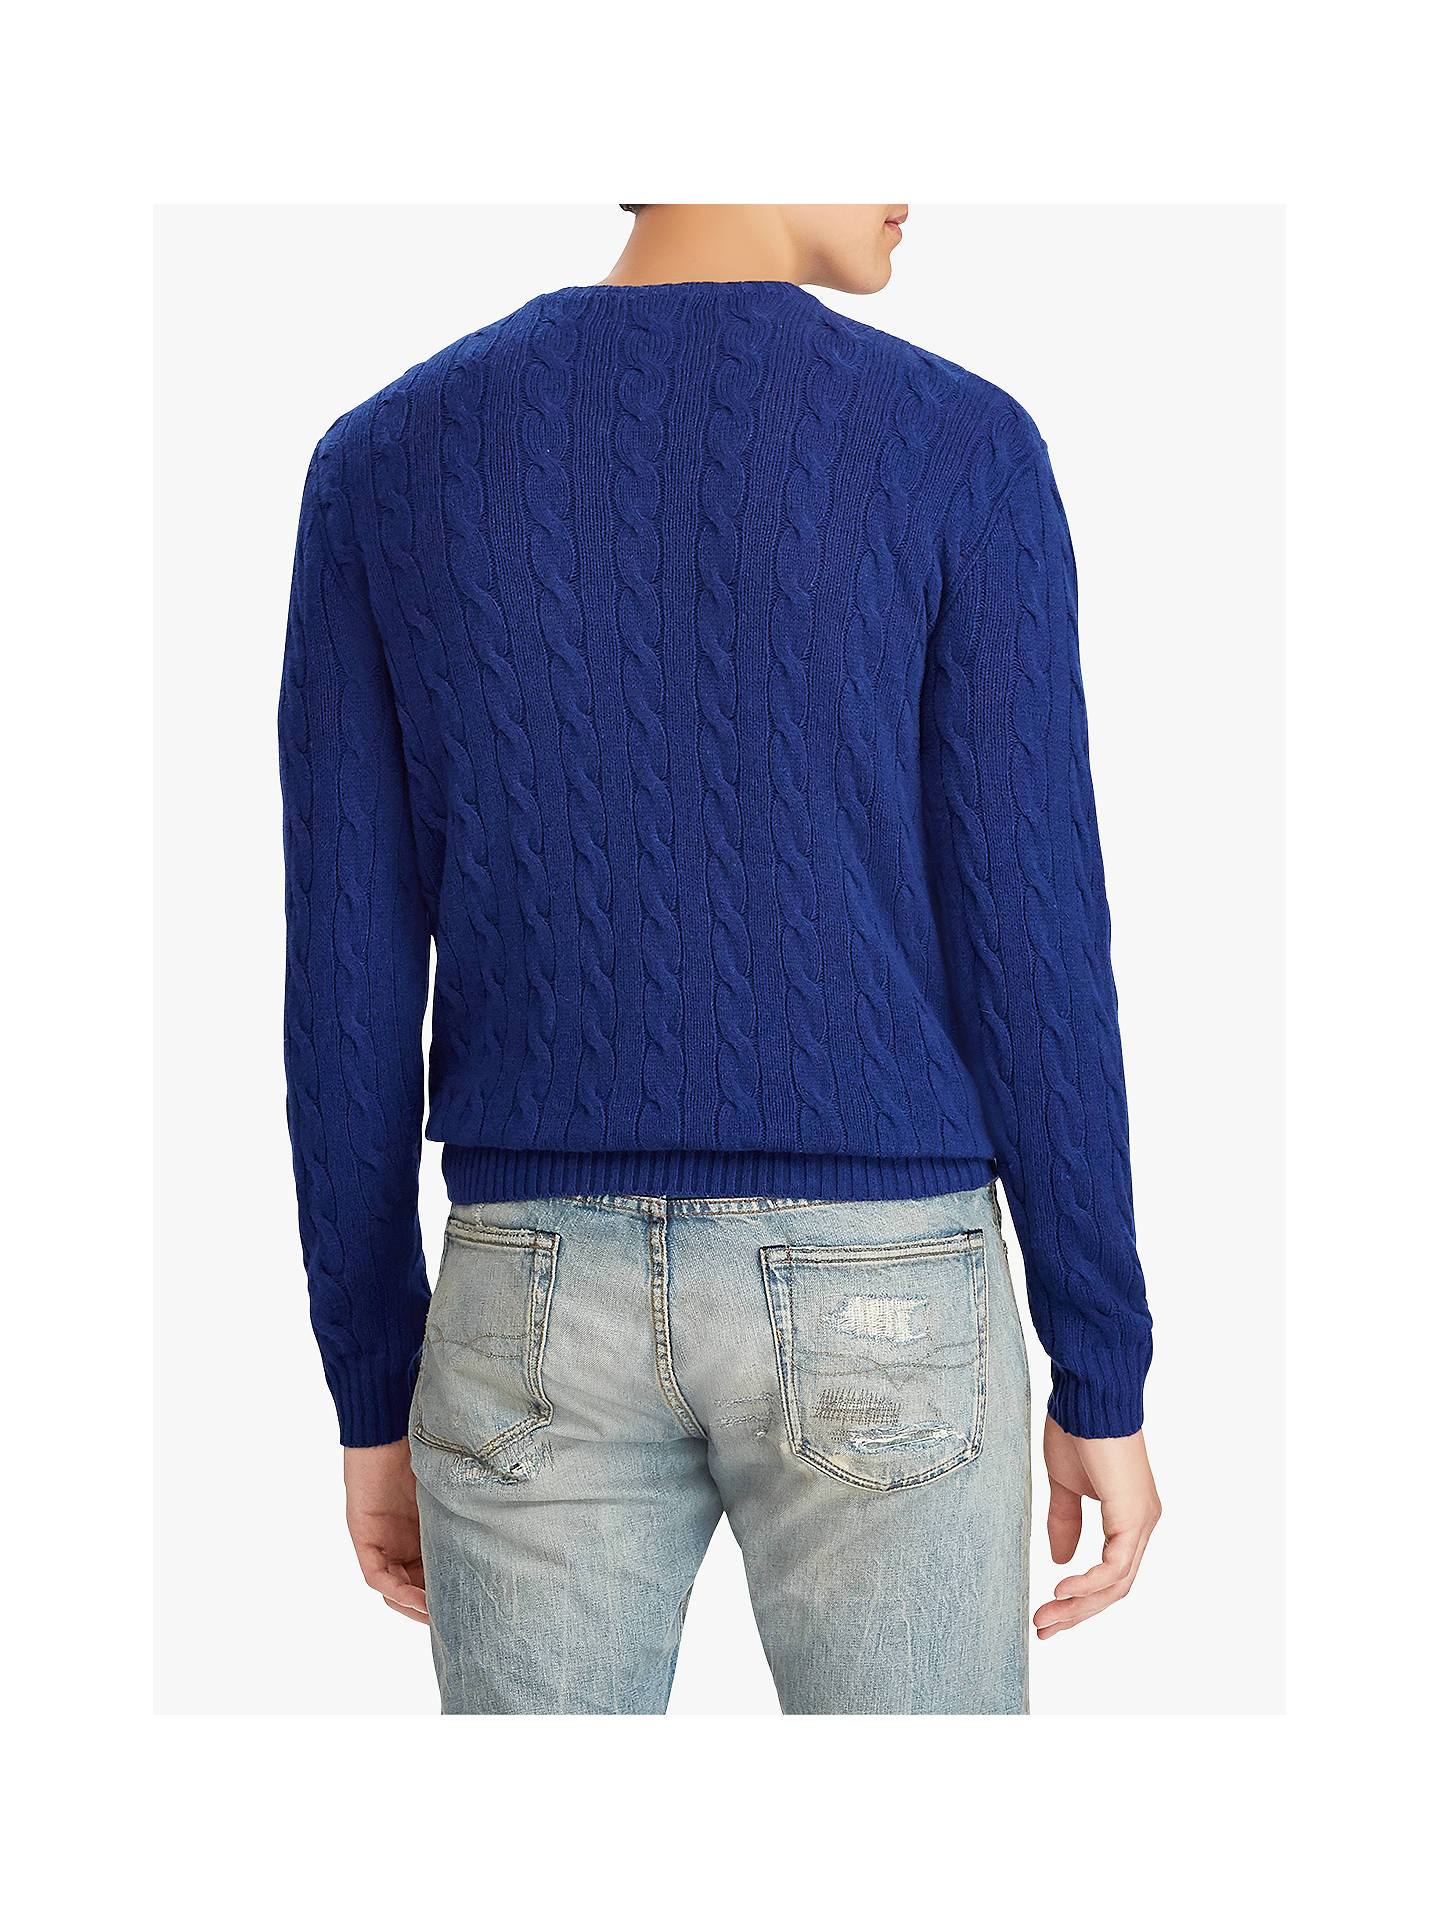 Buy Polo Ralph Lauren Cable Knit Jumper, Soho Blue, S Online at johnlewis.com